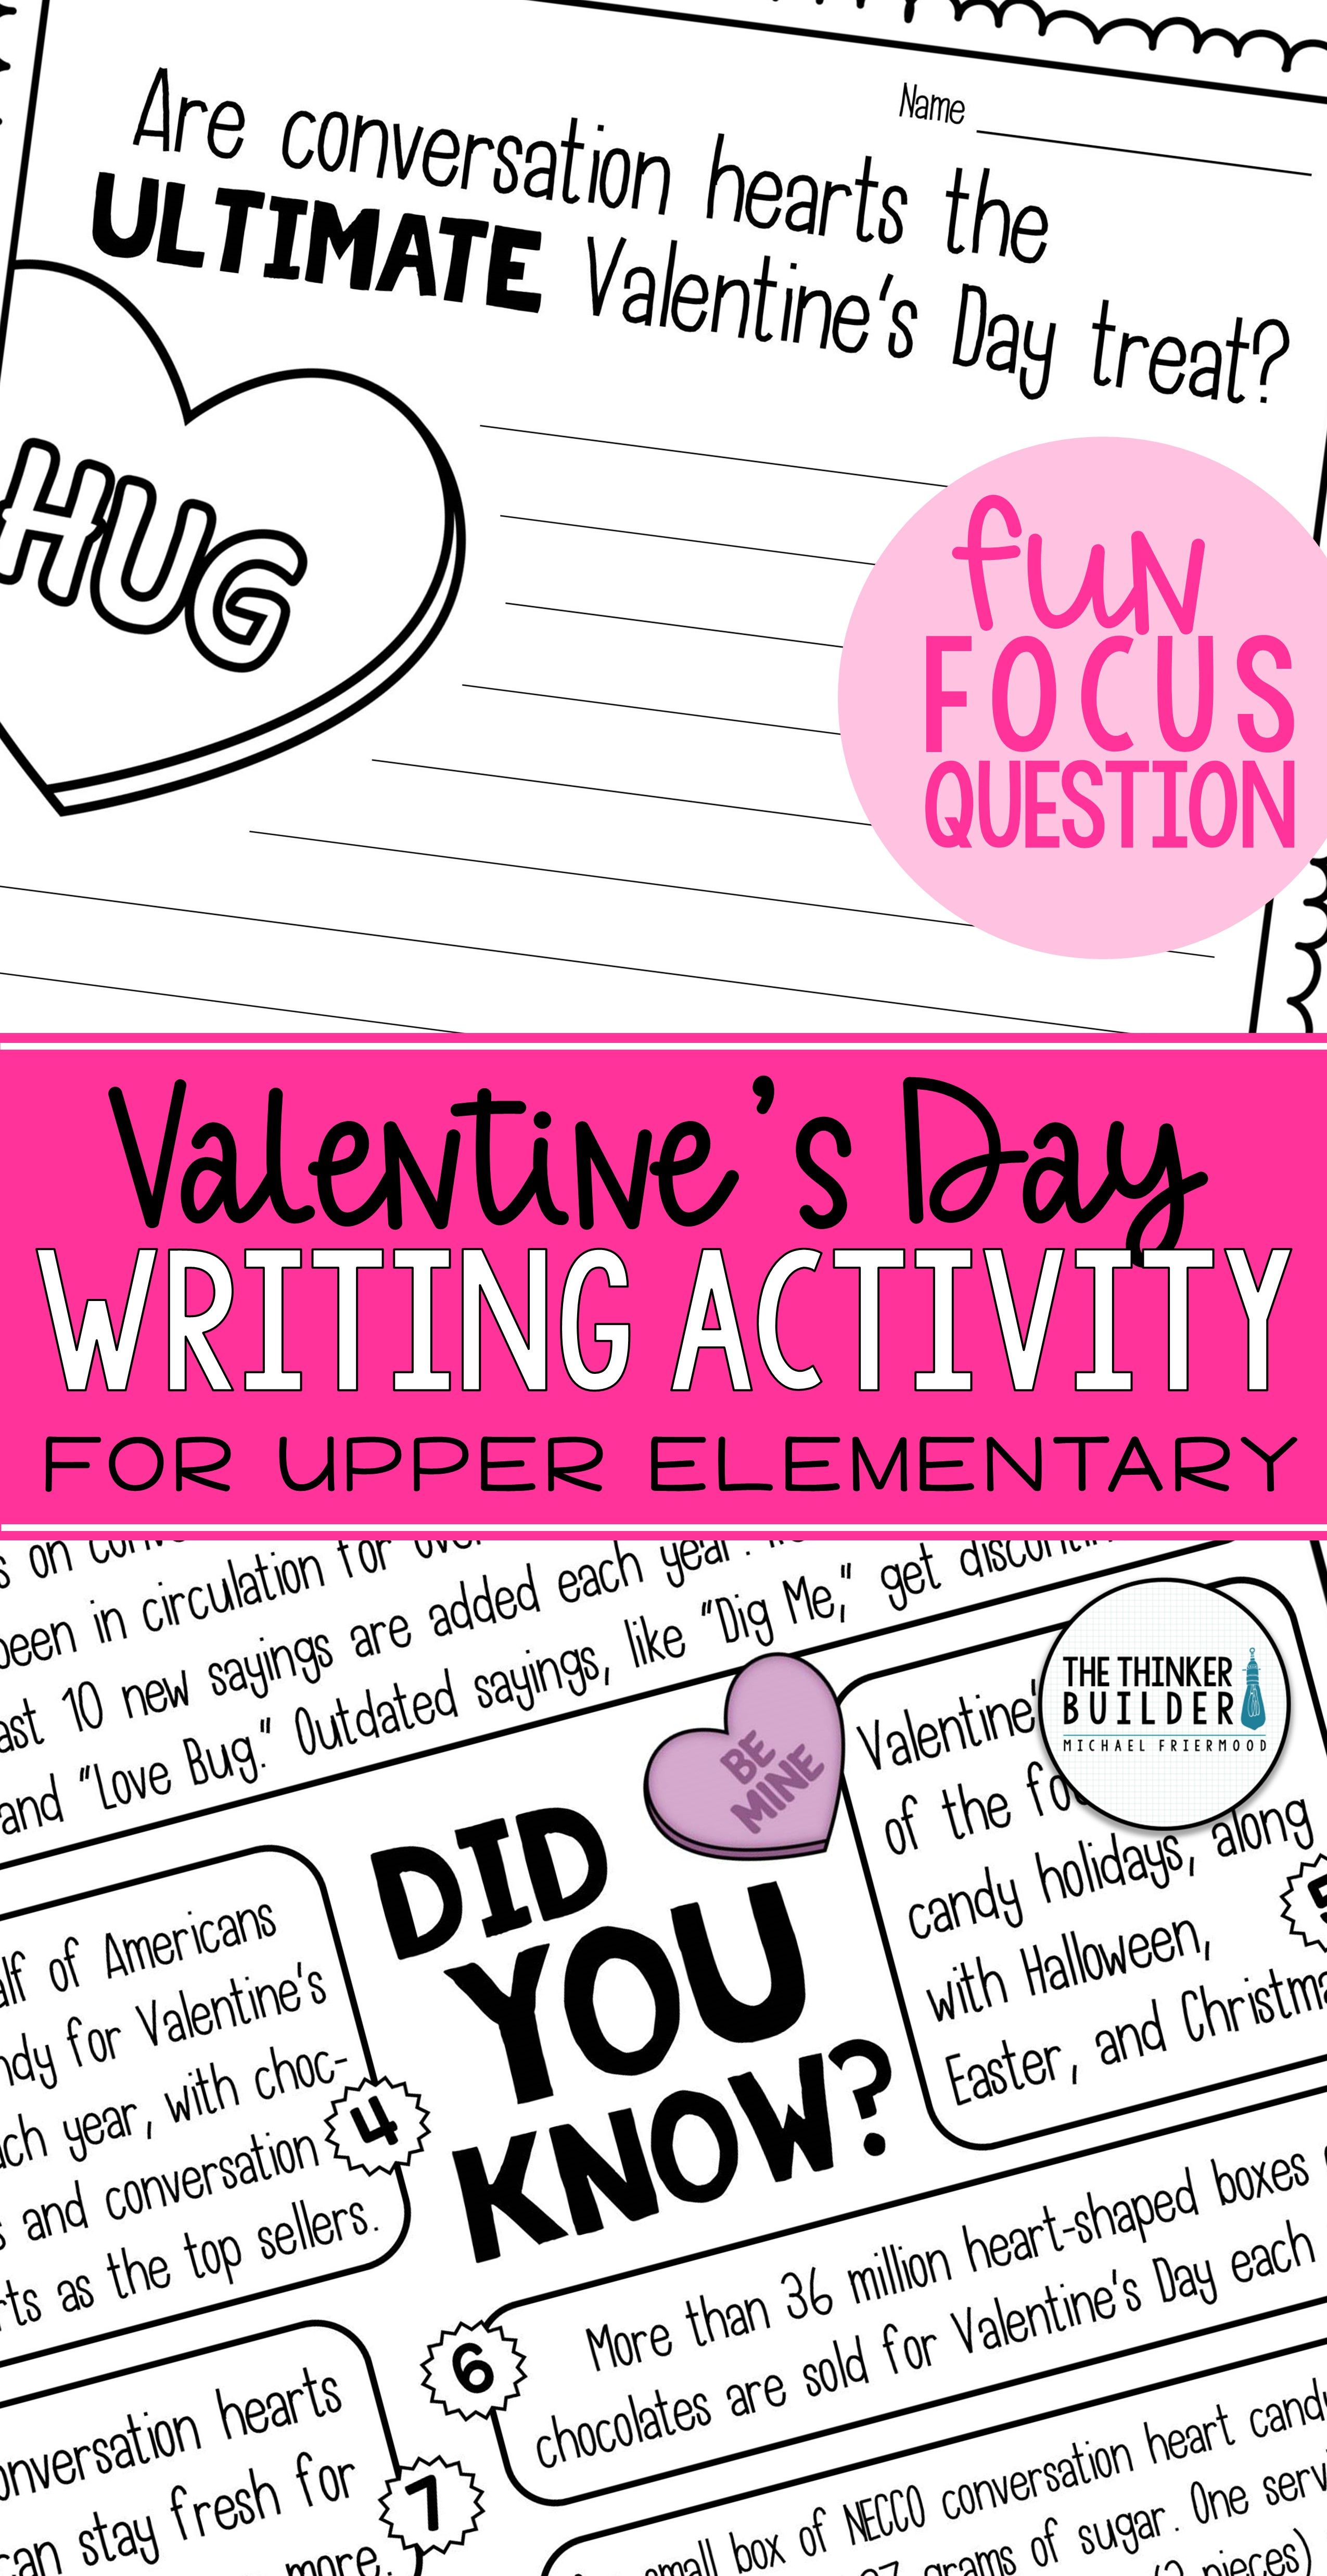 Fact Based Opinion Writing for Valentine s Day